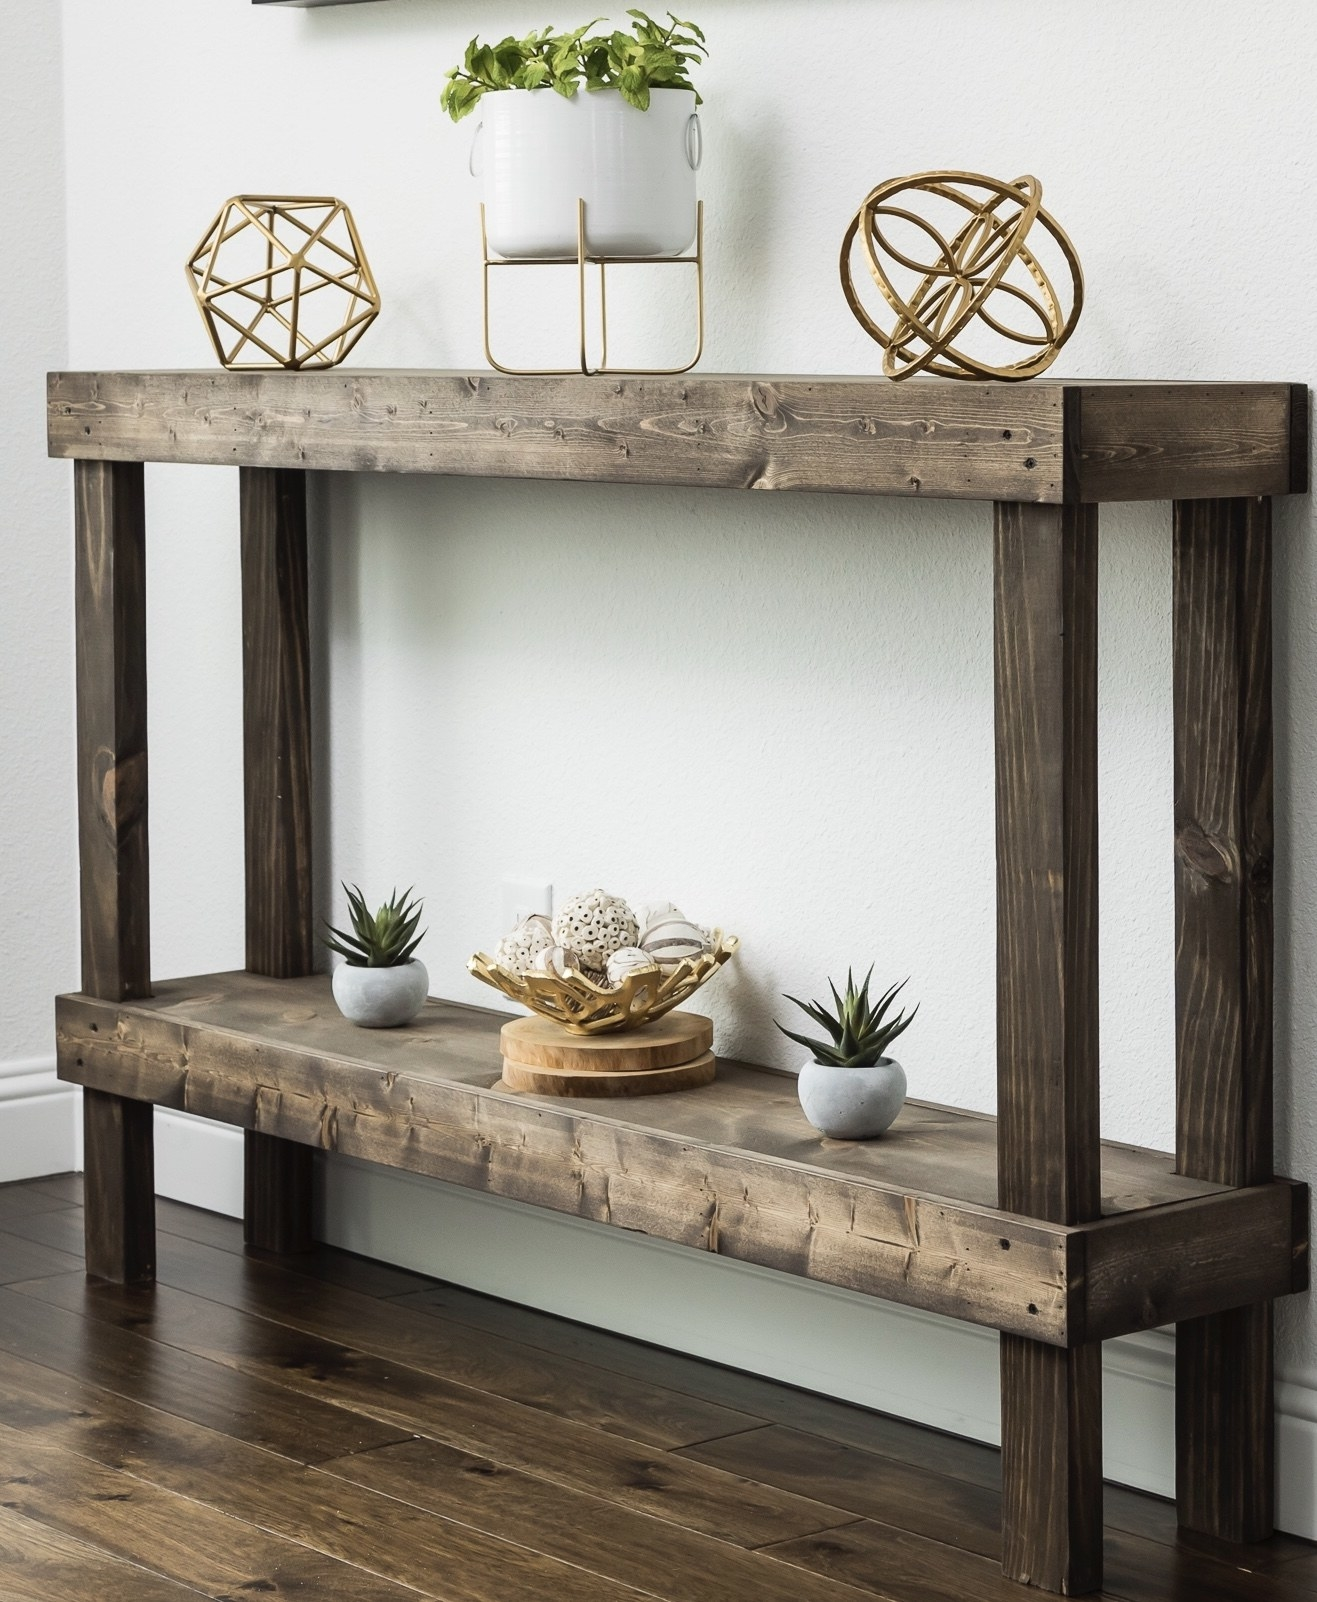 The table, which has a raw wood look, and one lower open storage shelf